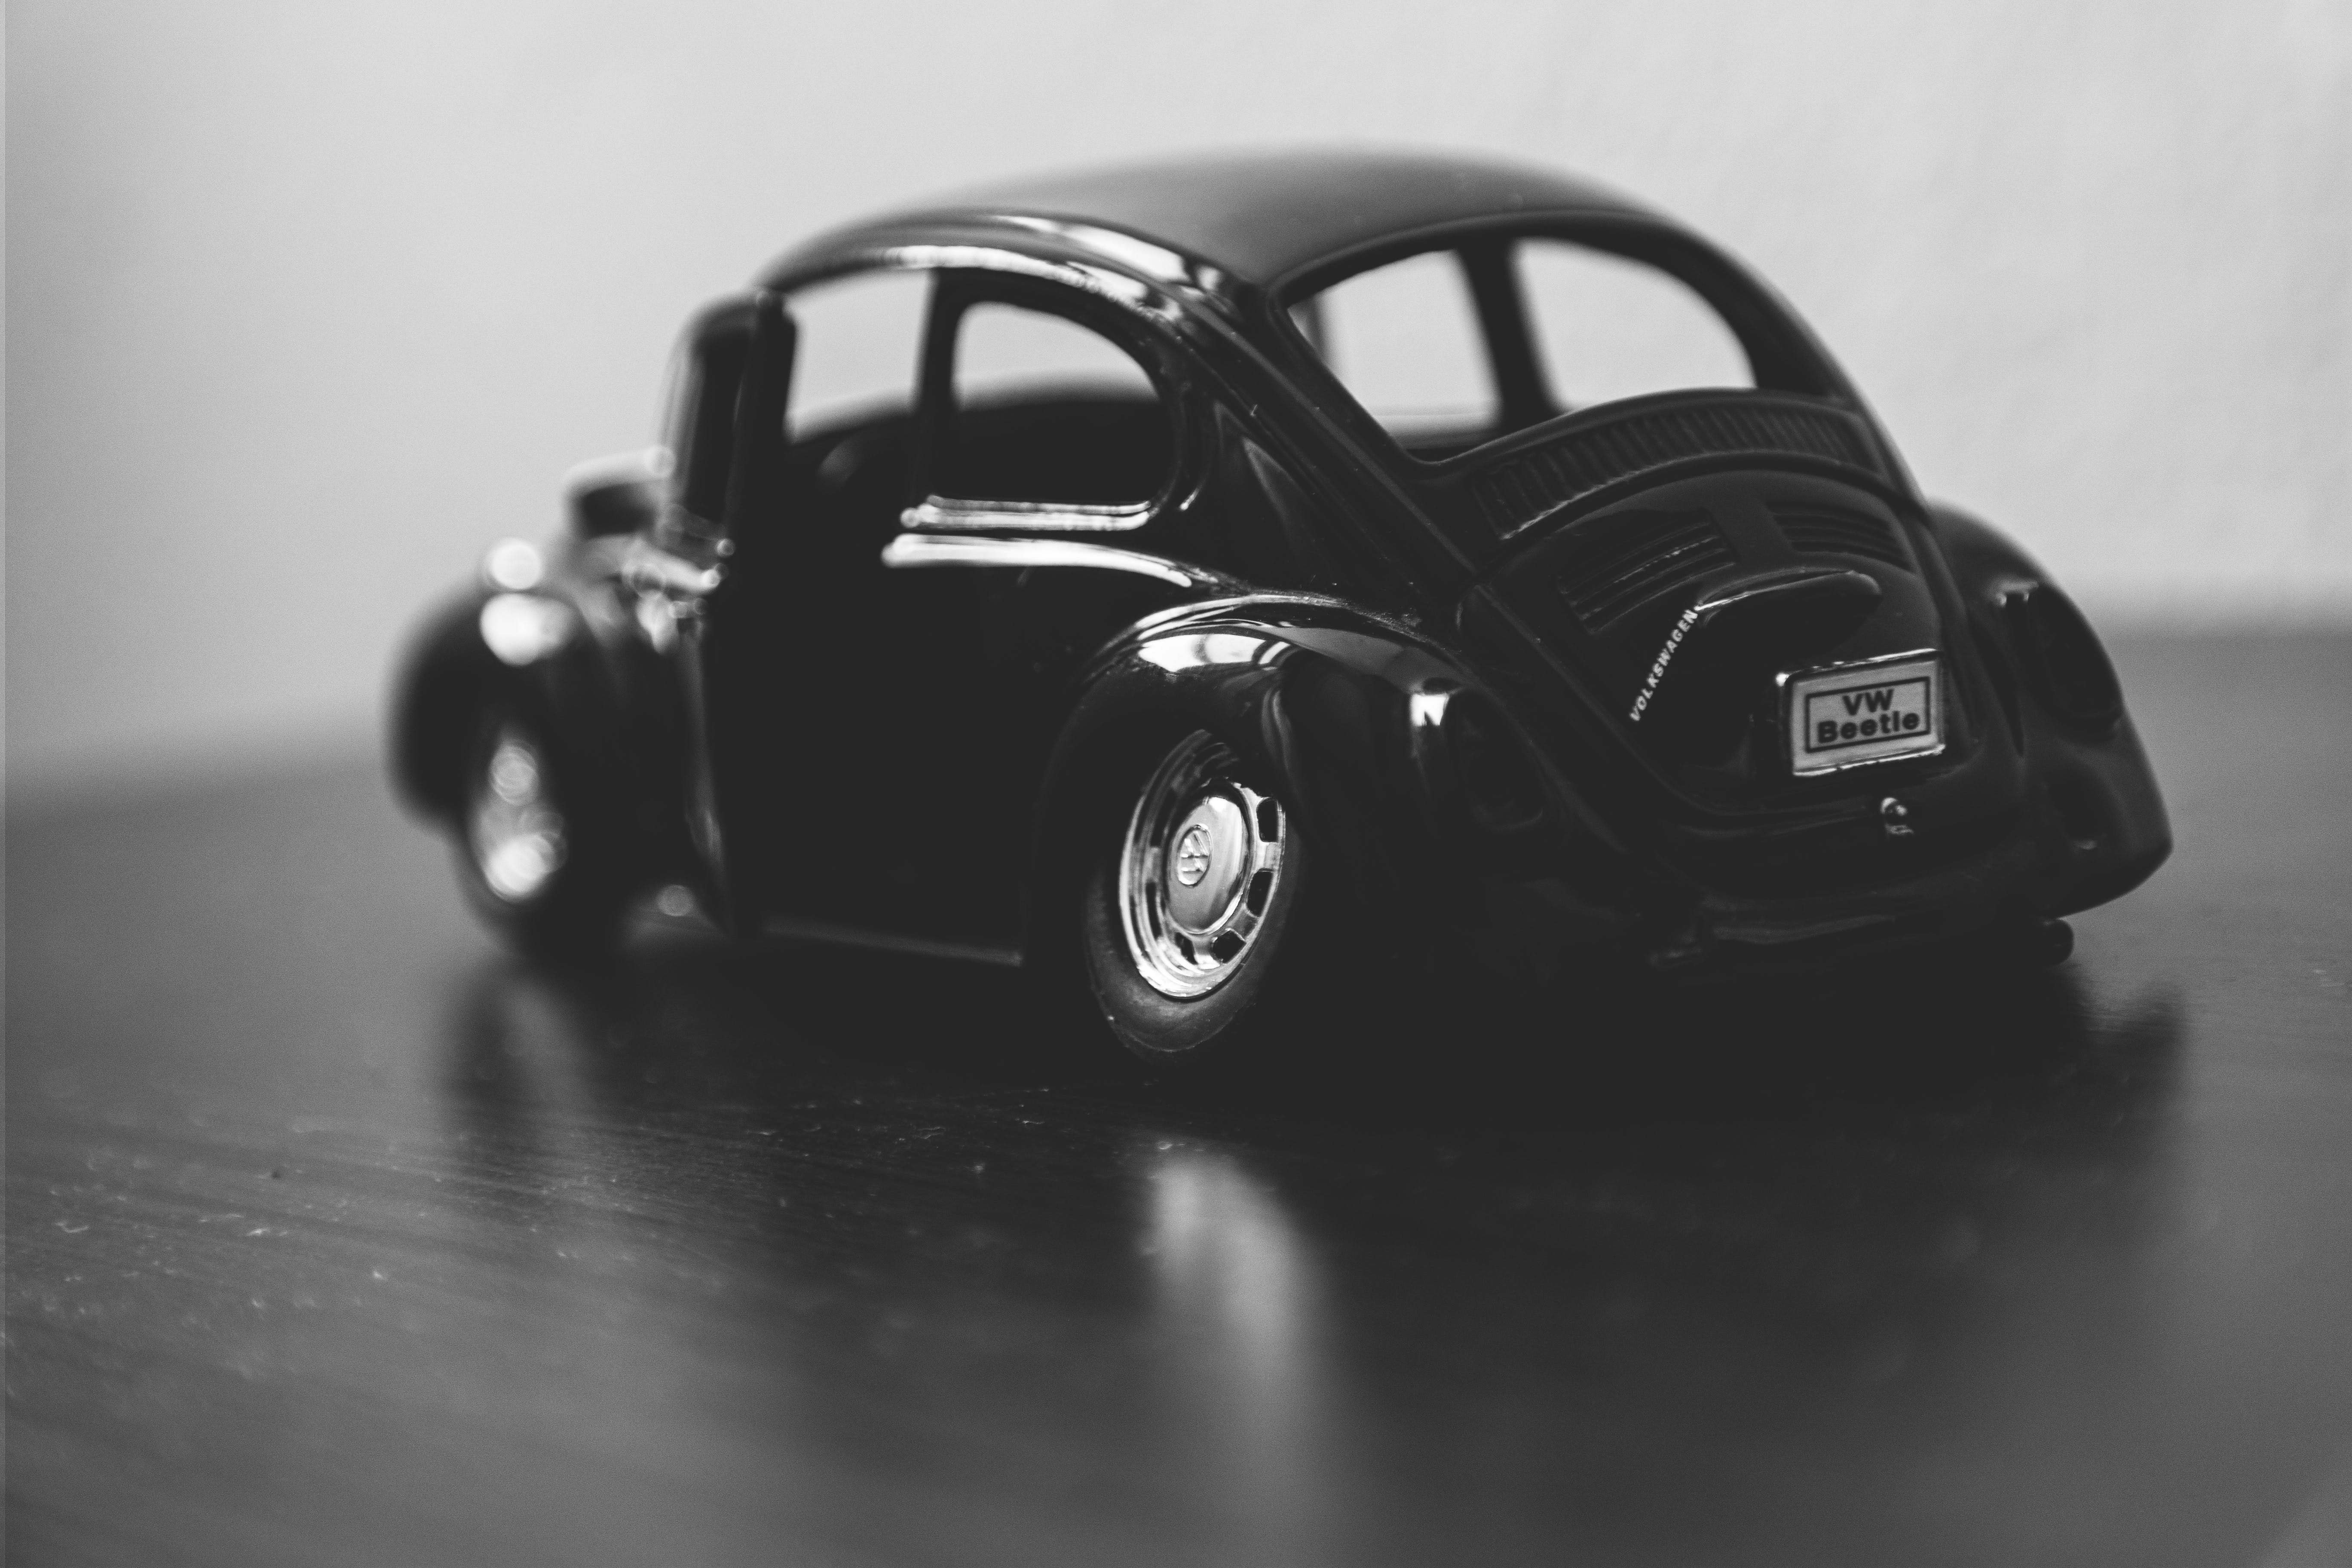 Black Volkswagen Beetle Grayscale Photography